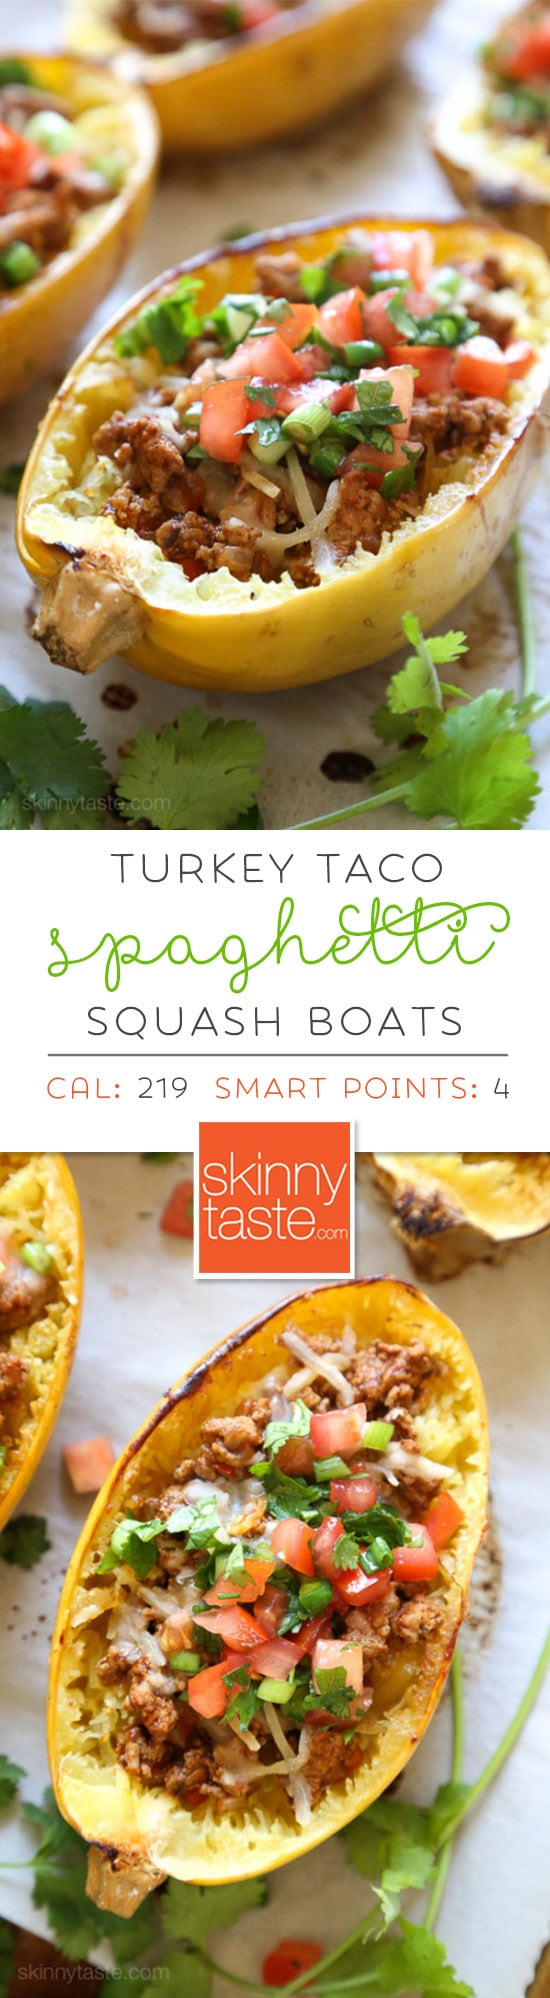 These Turkey Taco Spaghetti Squash Boats are my favorite way to eat spaghetti squash! Filled with the most flavorful turkey taco meat, cheese and topped with pico de gallo. #lowcarb #keto #spaghettisquash #spaghettisquashrecipe #glutenfree